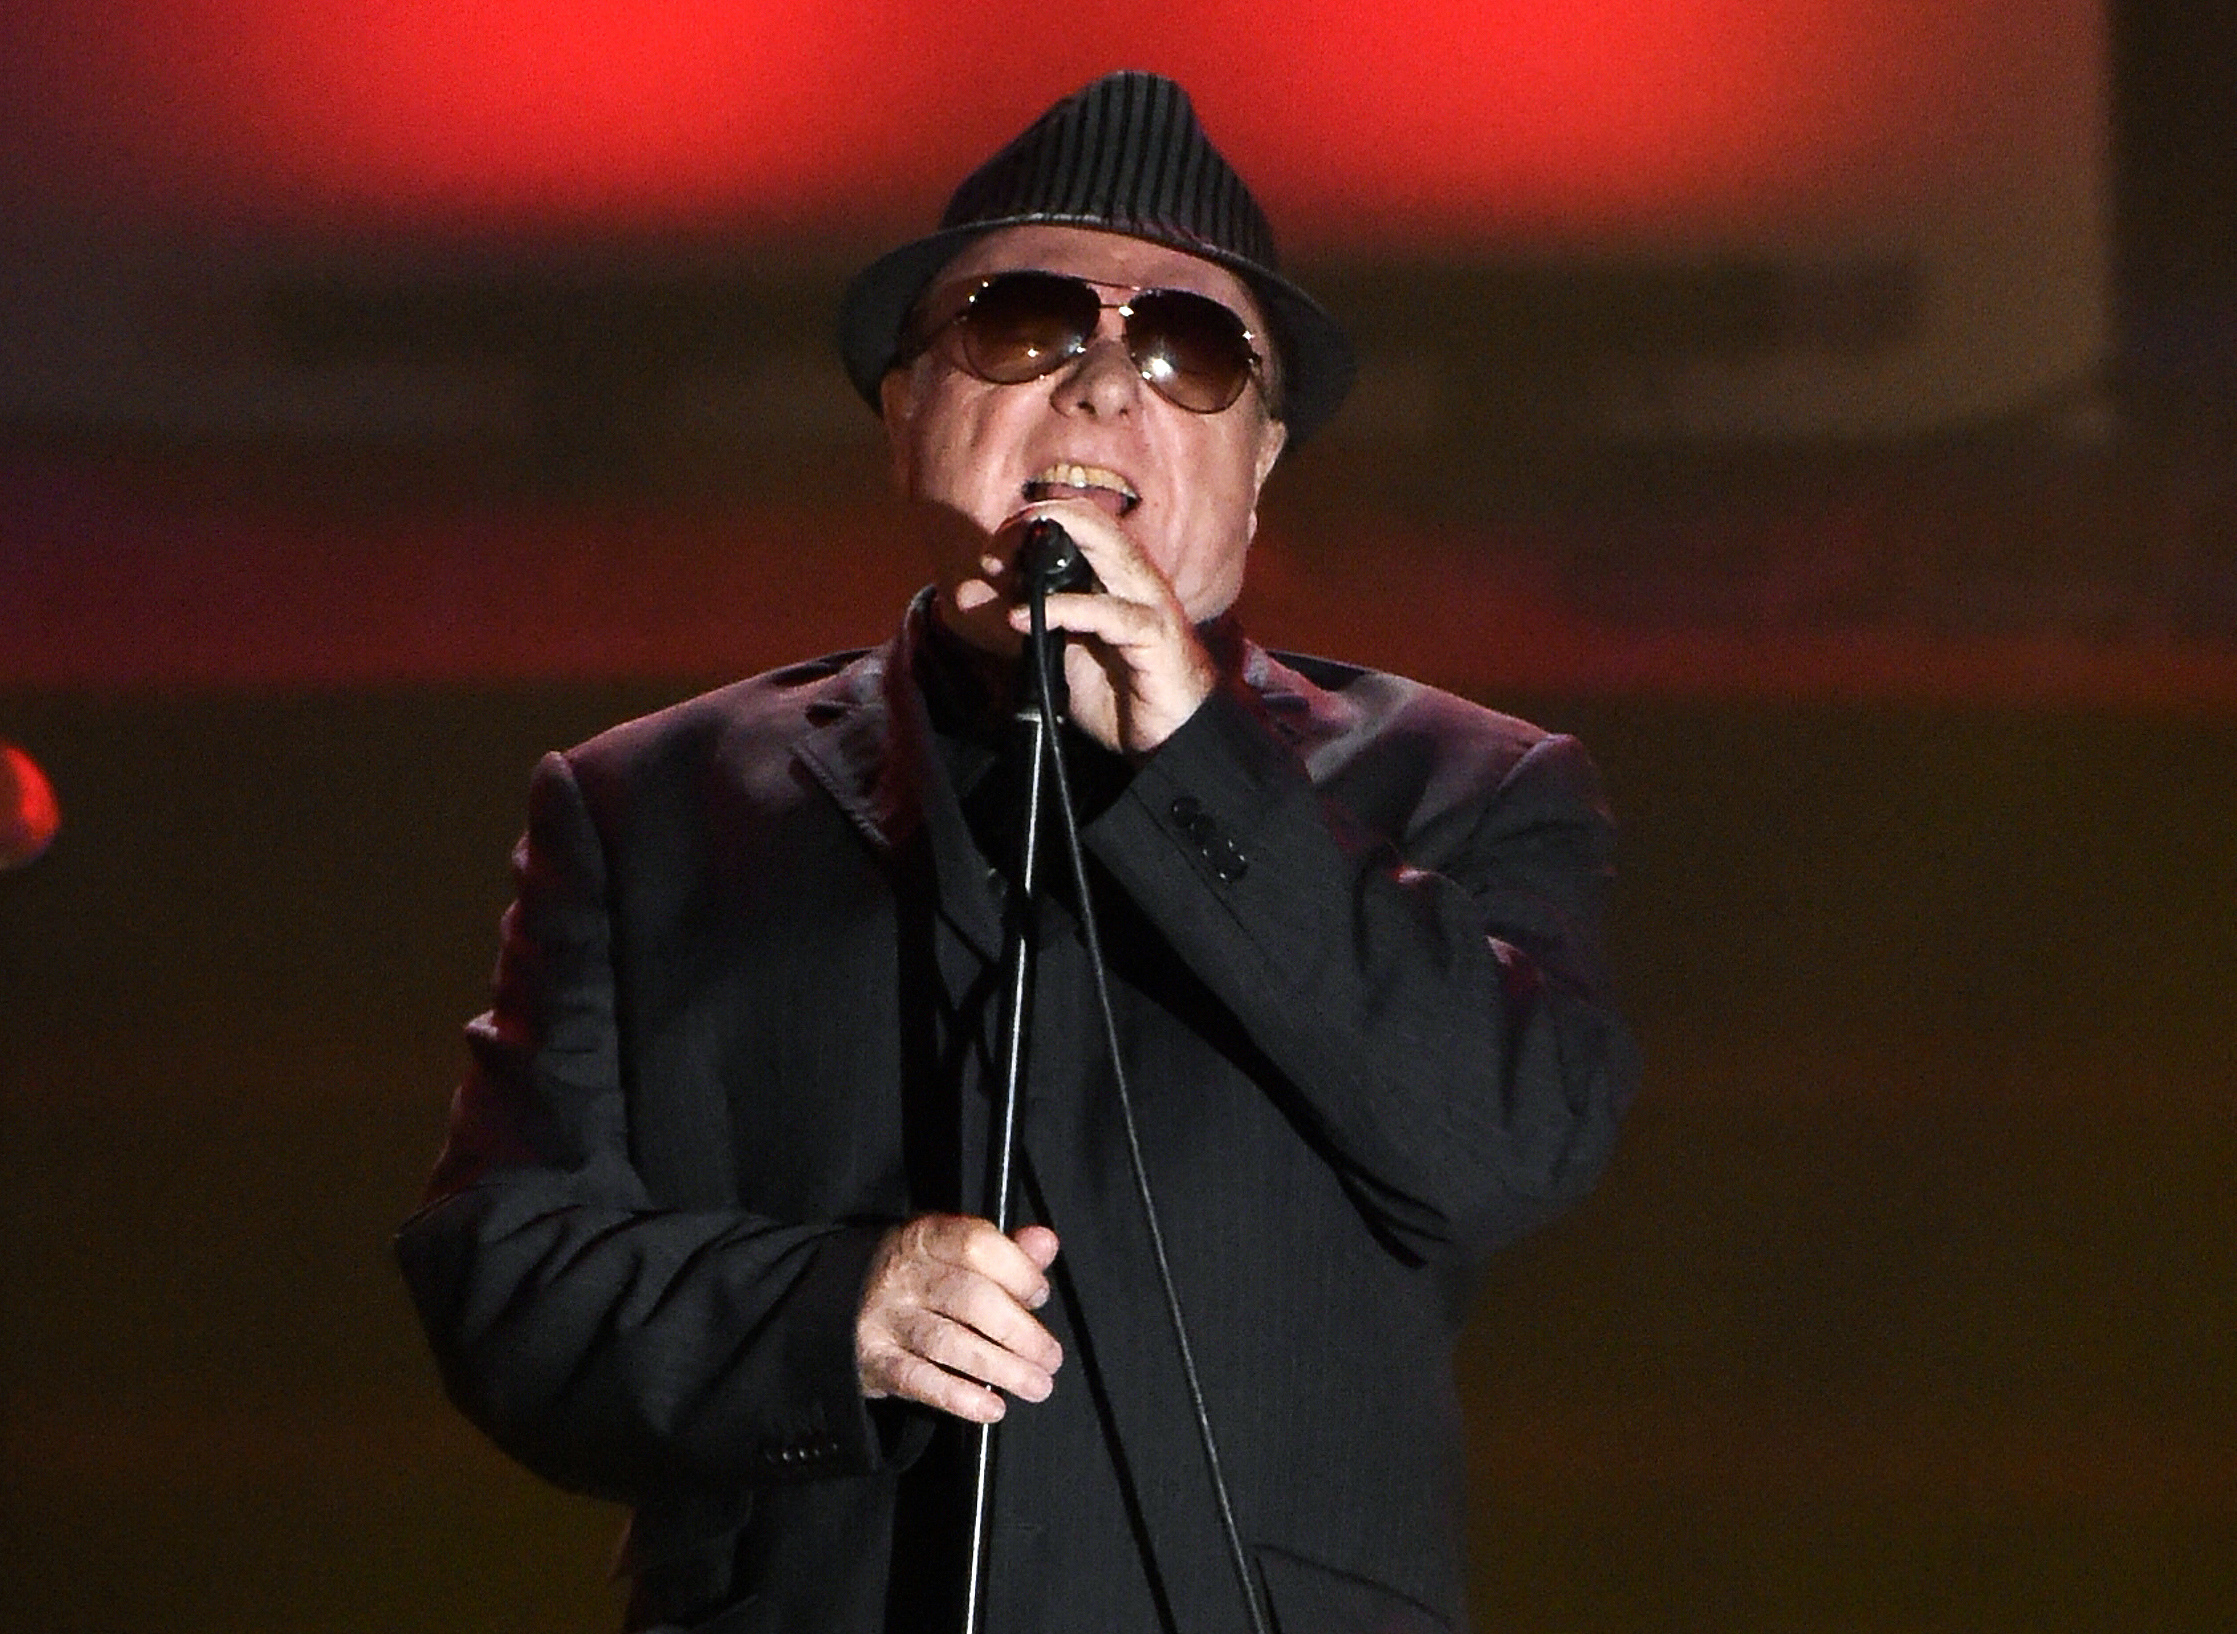 In this June 18, 2015 file photo, Van Morrison performs at the 46th annual Songwriters Hall of Fame Induction and Awards Gala in New York.